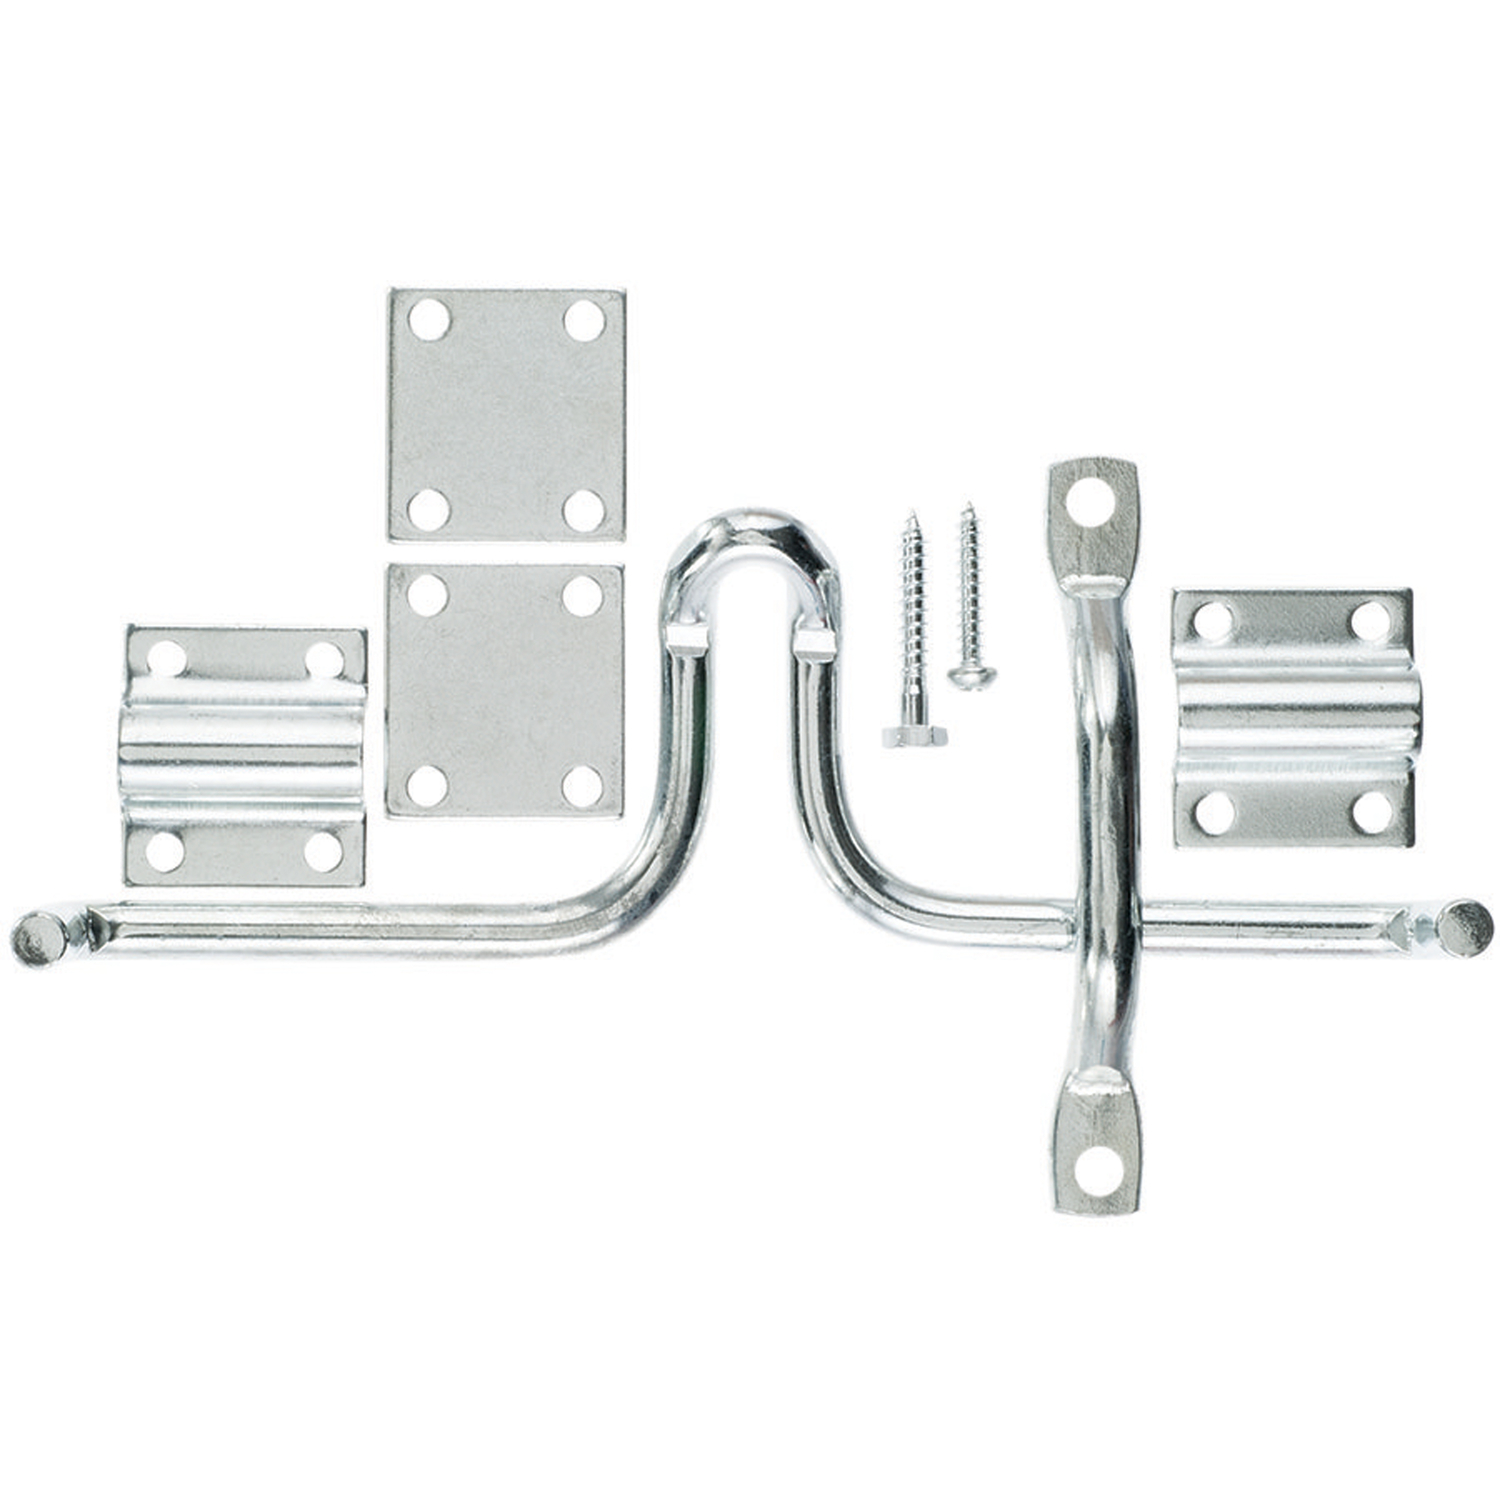 Ace Slide Bolt Gate Latch 5-3/4 in. For Barns and Livestock Pens Zinc Zinc